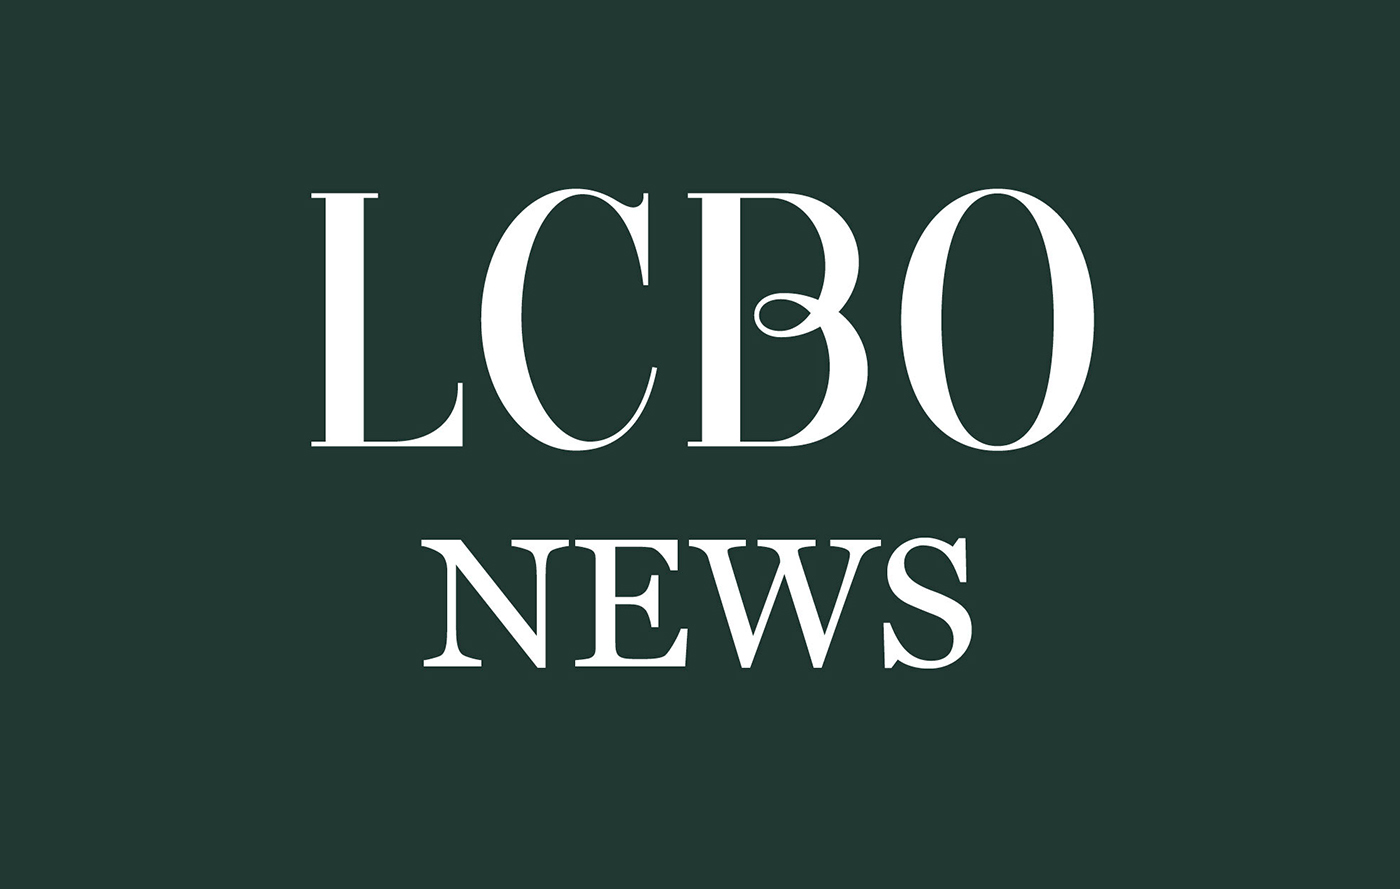 LCBO PROGRAMS EXPAND TO INCREASE CHOICE AND CONVENIENCE FOR ONTARIANS